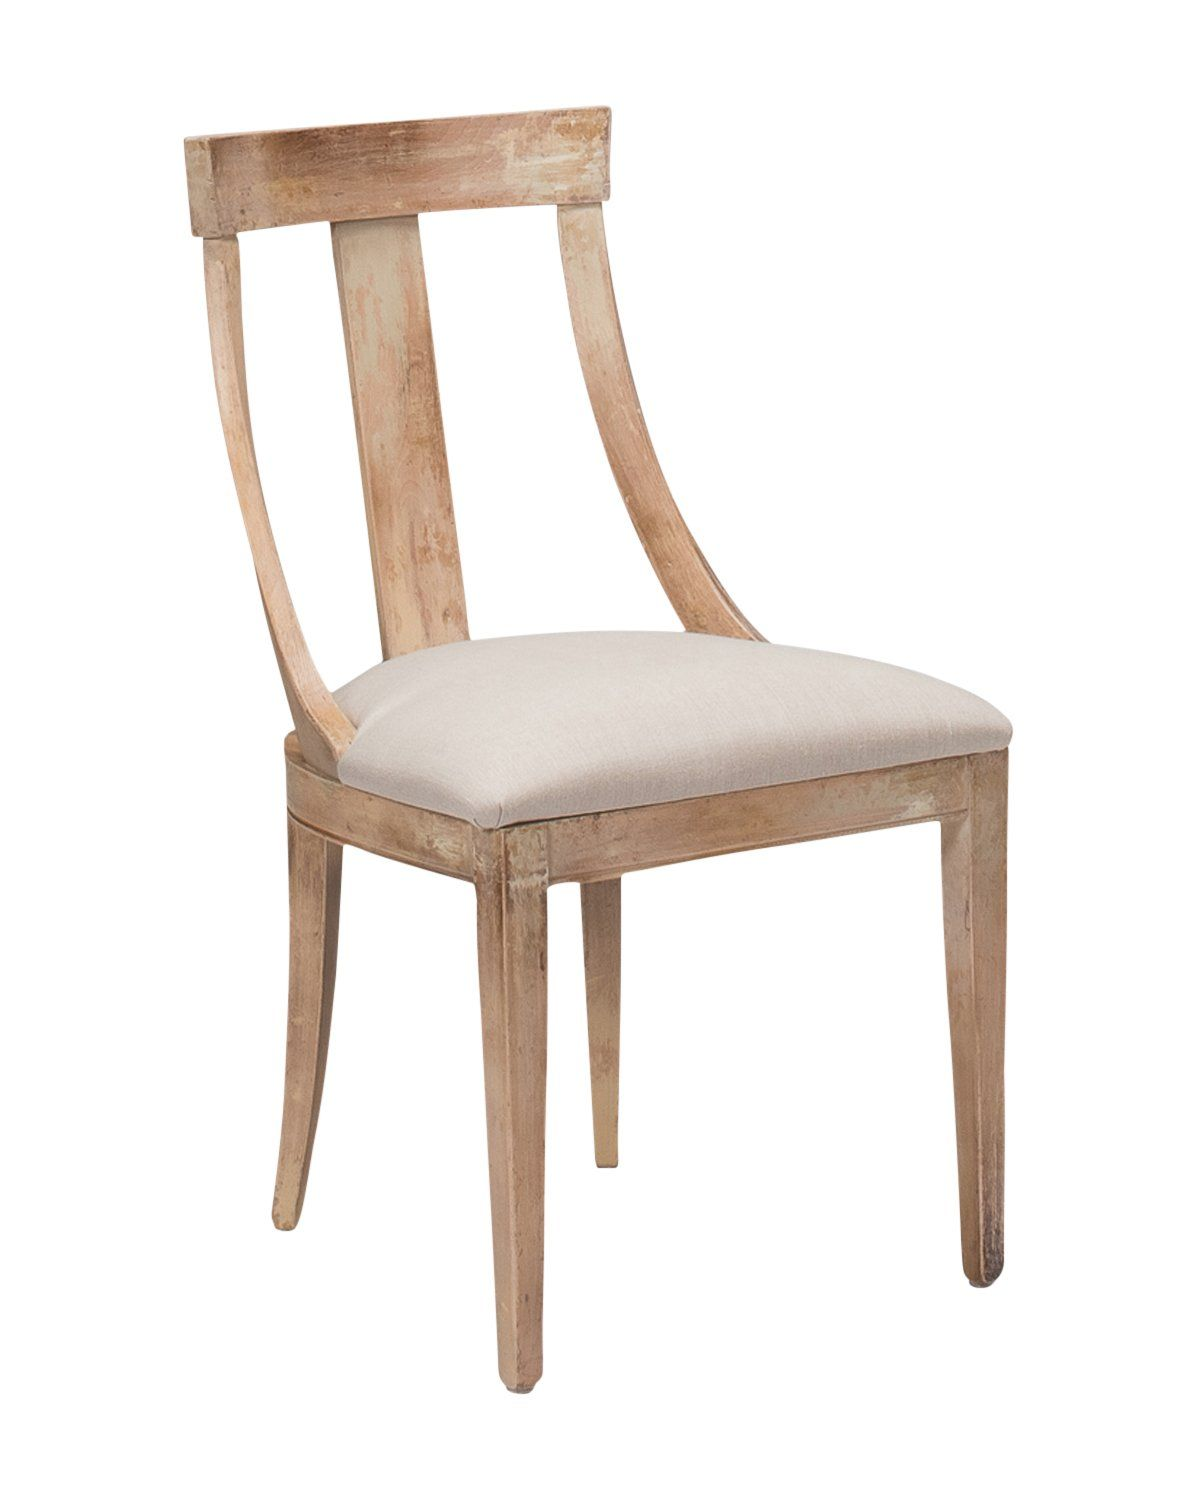 Martell Chair - Natural images